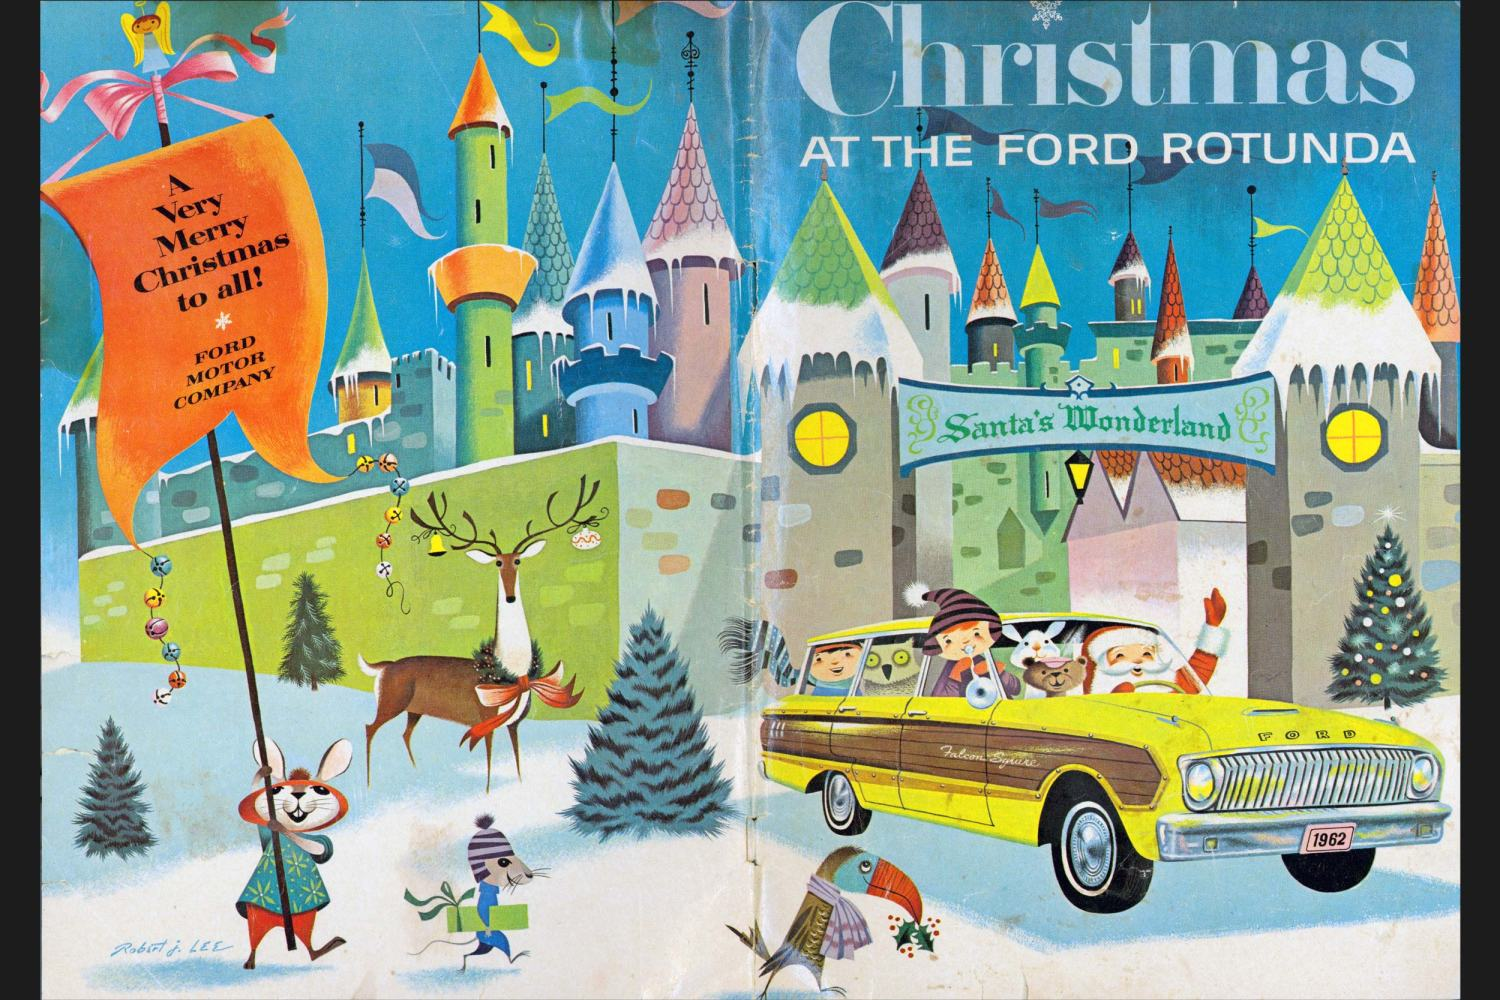 1962 Rotunda Christmas Coloring Book